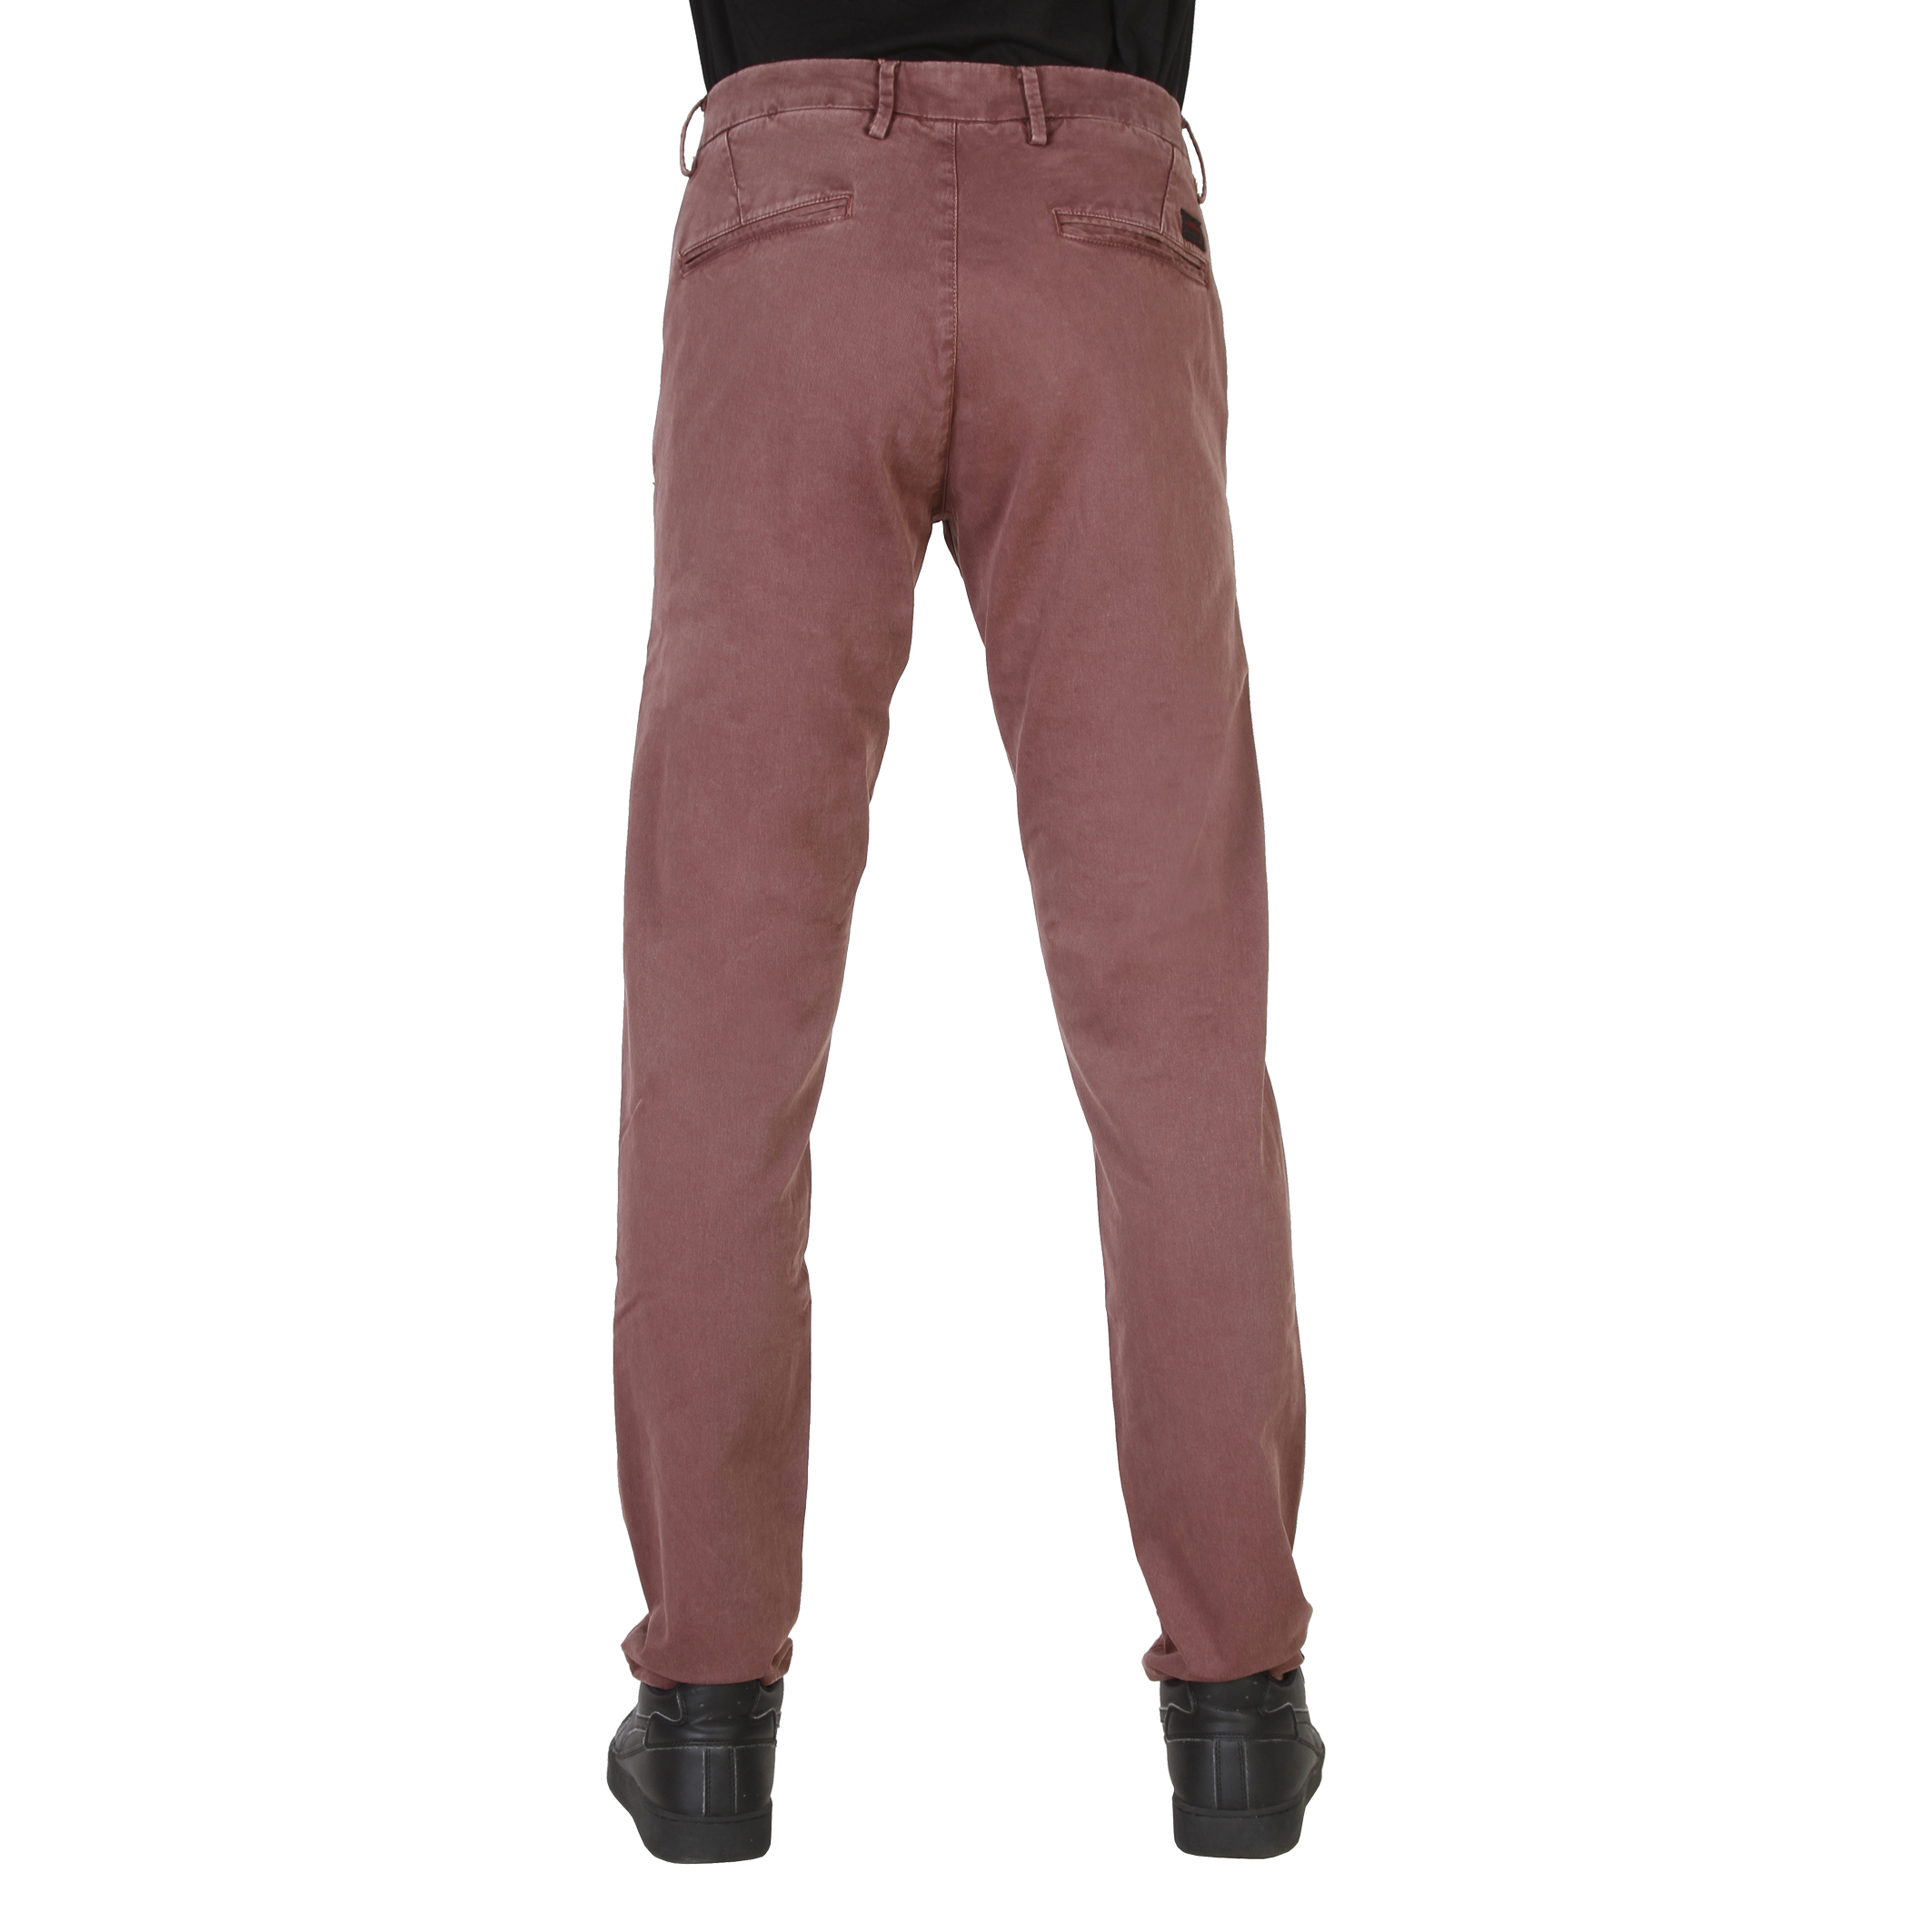 Jeans  Carrera Jeans 00T617_0845A brown